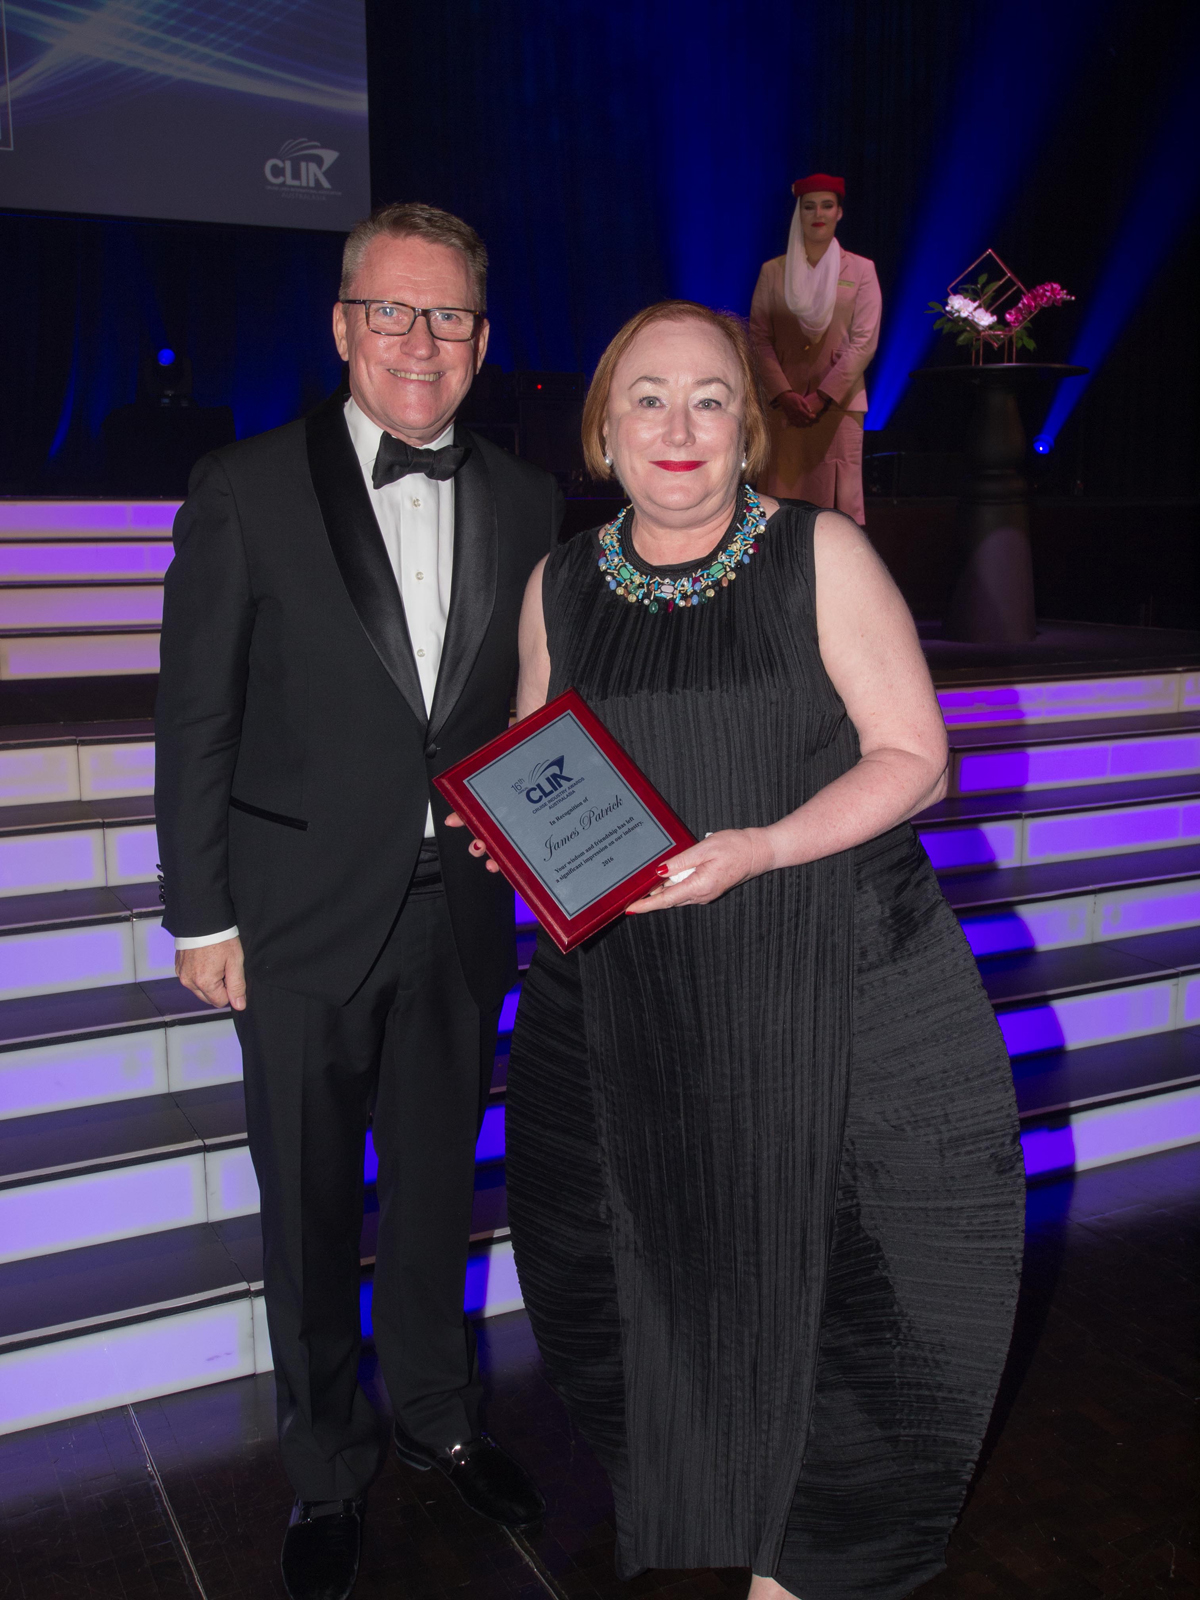 CLIA's Steve Odell presents Wiltrans International MD Diane Patrick with a posthumous award for her late husband, James Patrick